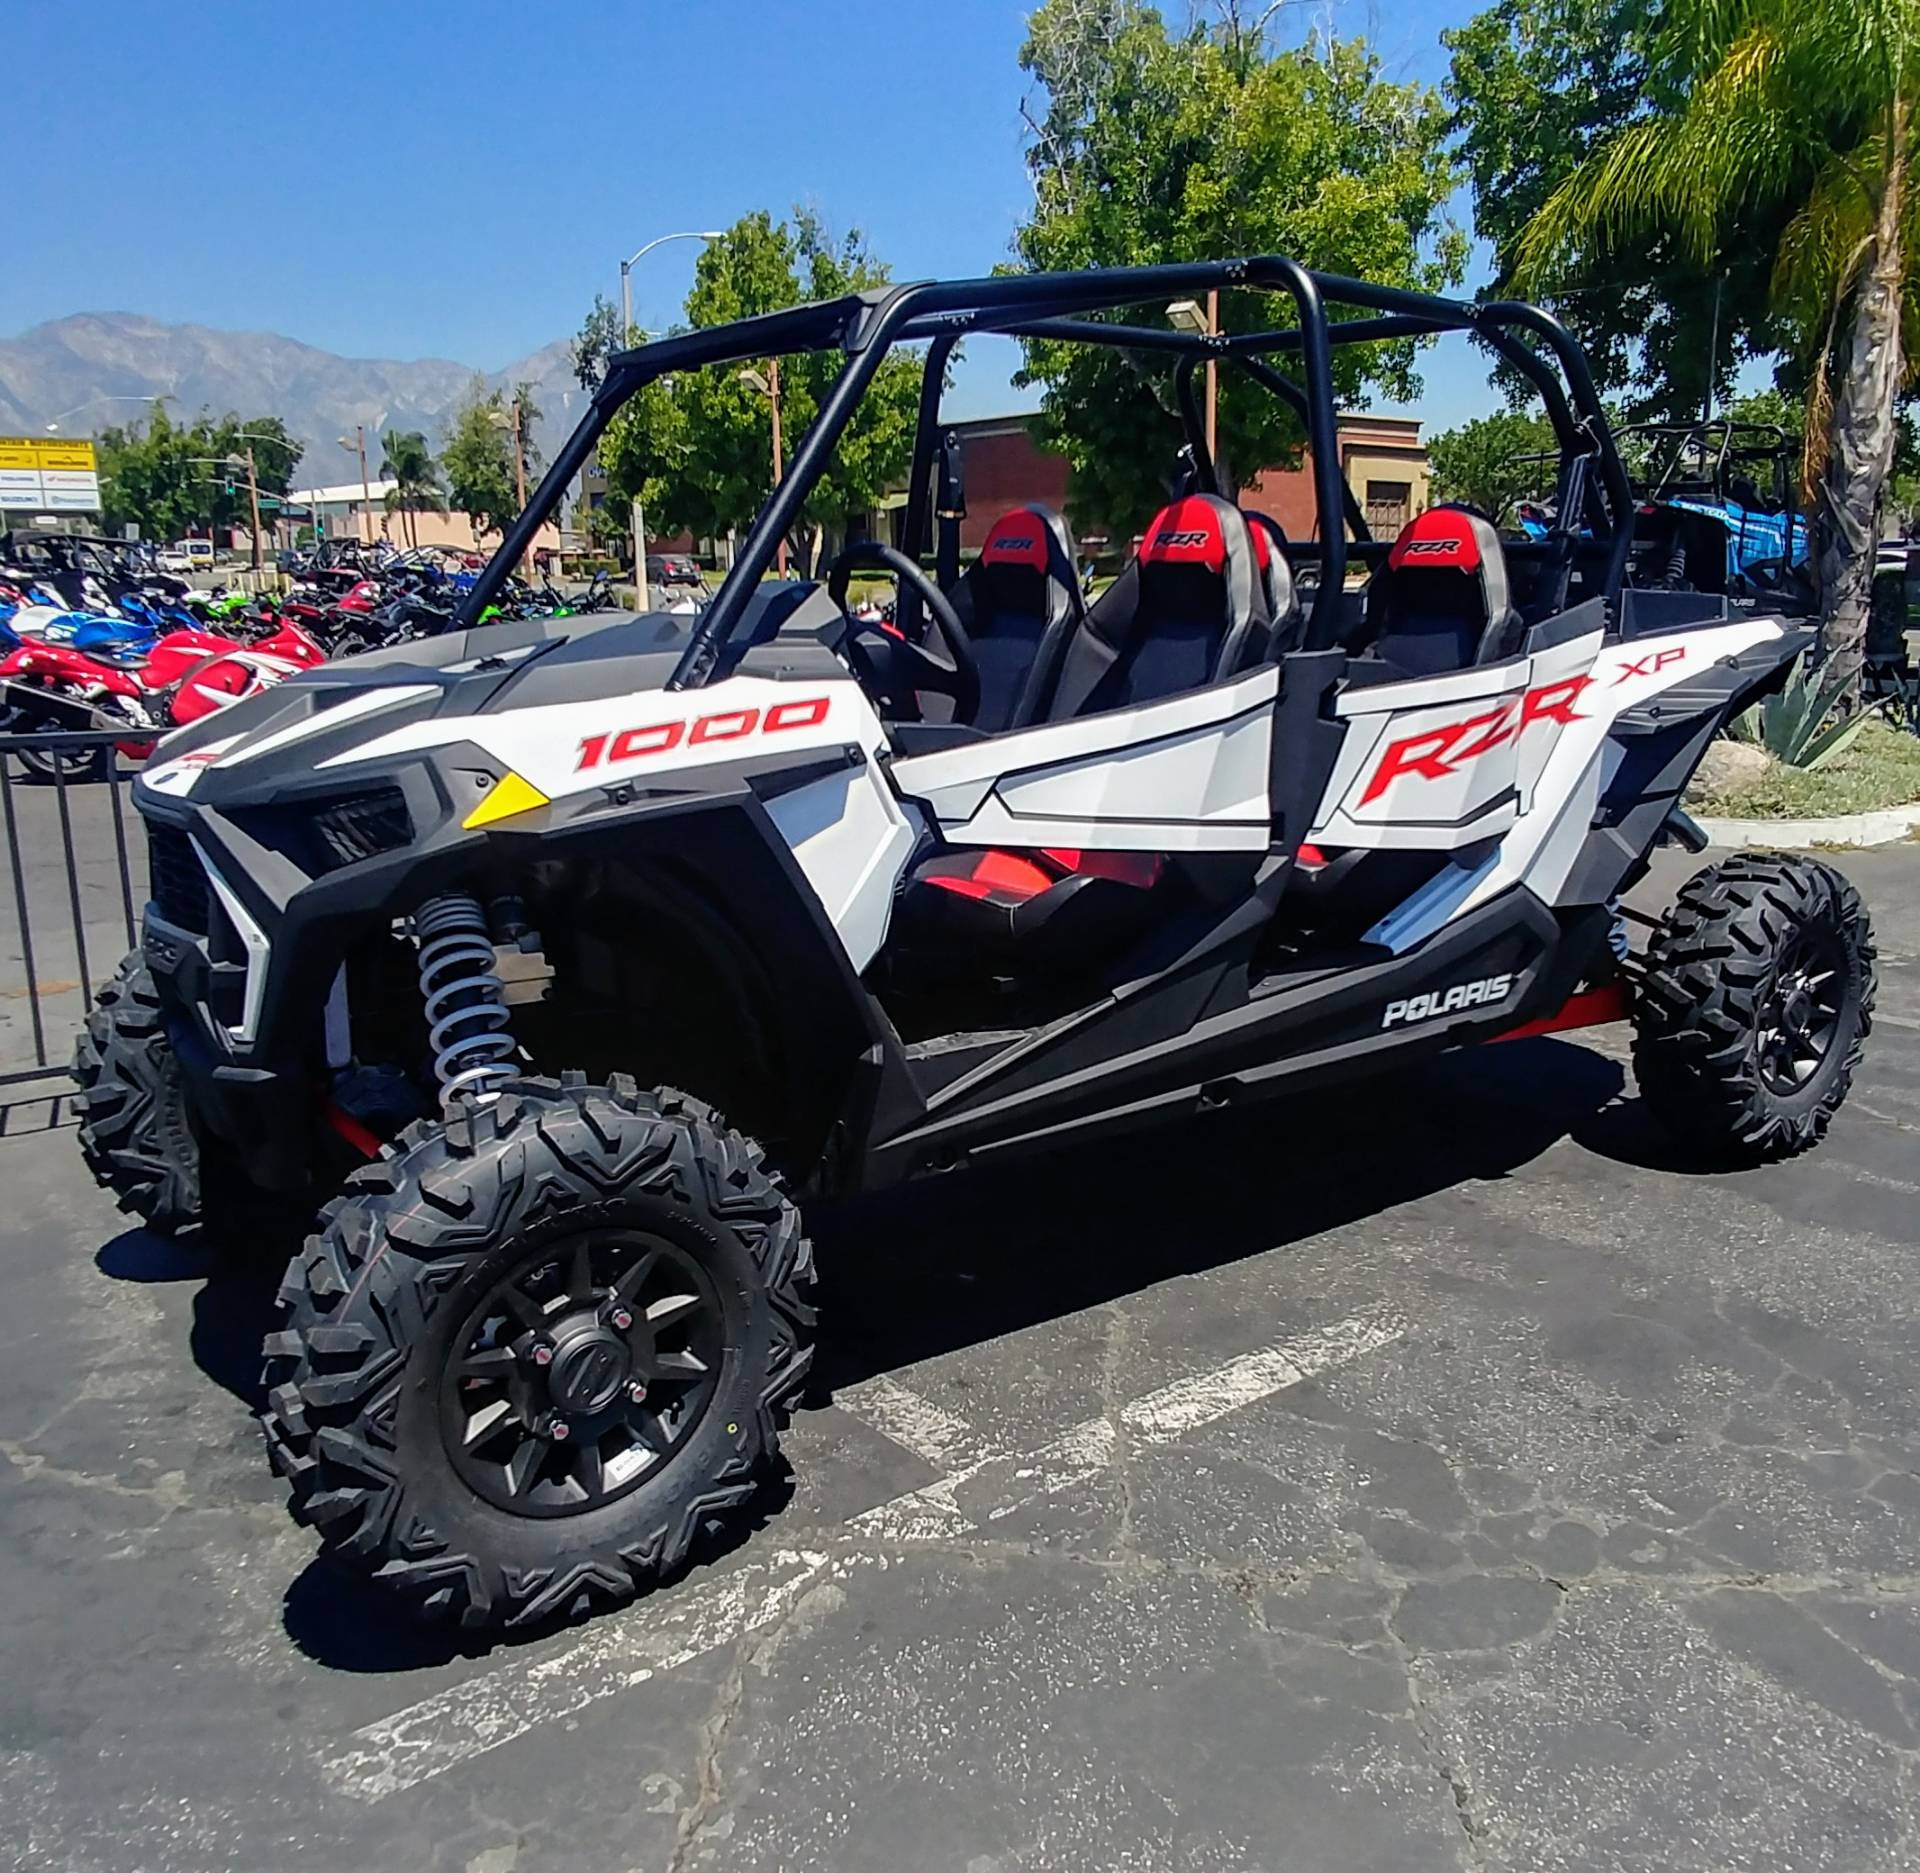 2020 Polaris RZR XP 4 1000 in Ontario, California - Photo 12